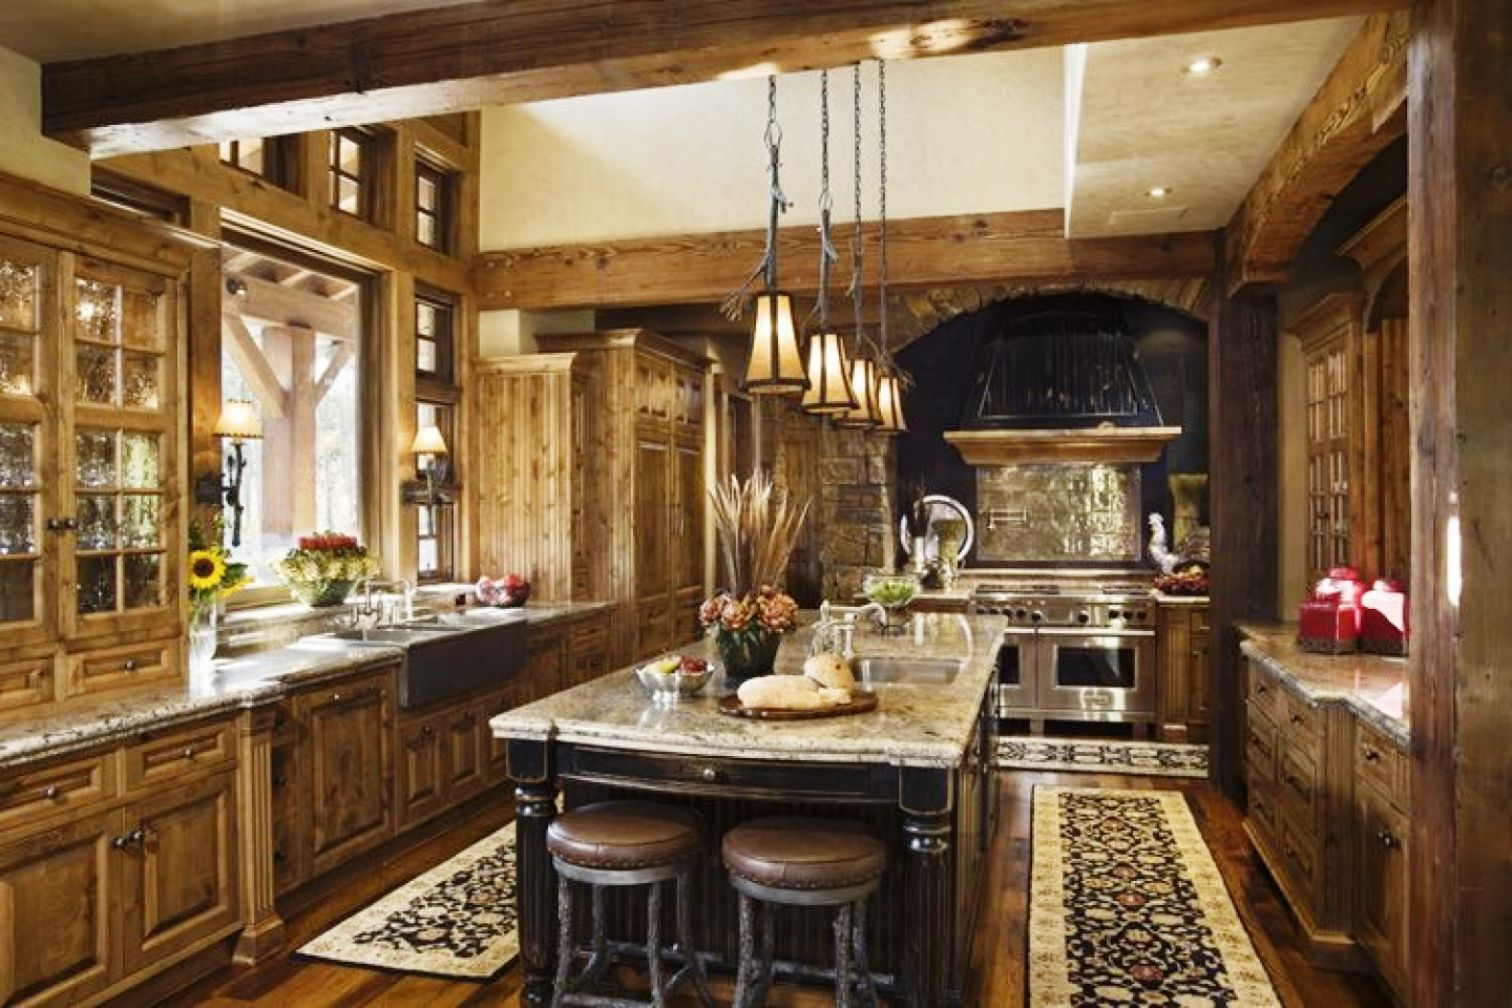 17 Best Images About Rustic Kitchen Cabinets On Pinterest Rose Marie Custom  Kitchens And Rustic Kitchen